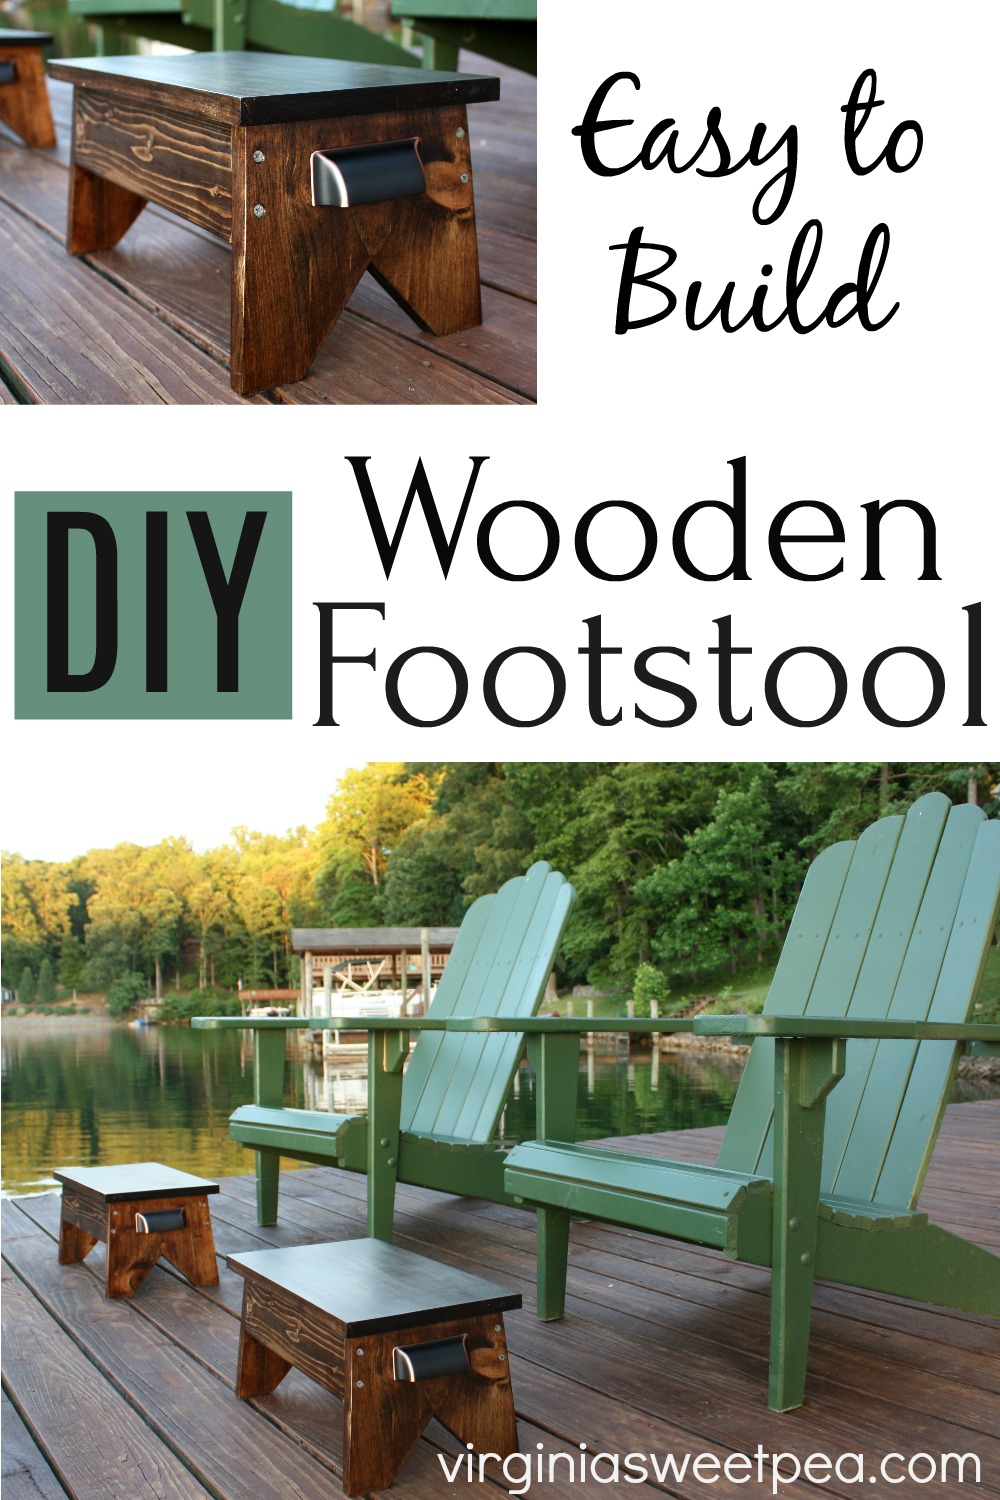 DIY Wooden Footstool - Get a step-by-step tutorial to make a wooden footstool for your home. #woodworking #footstool #diyfootstool #woodfootstool via @spaula